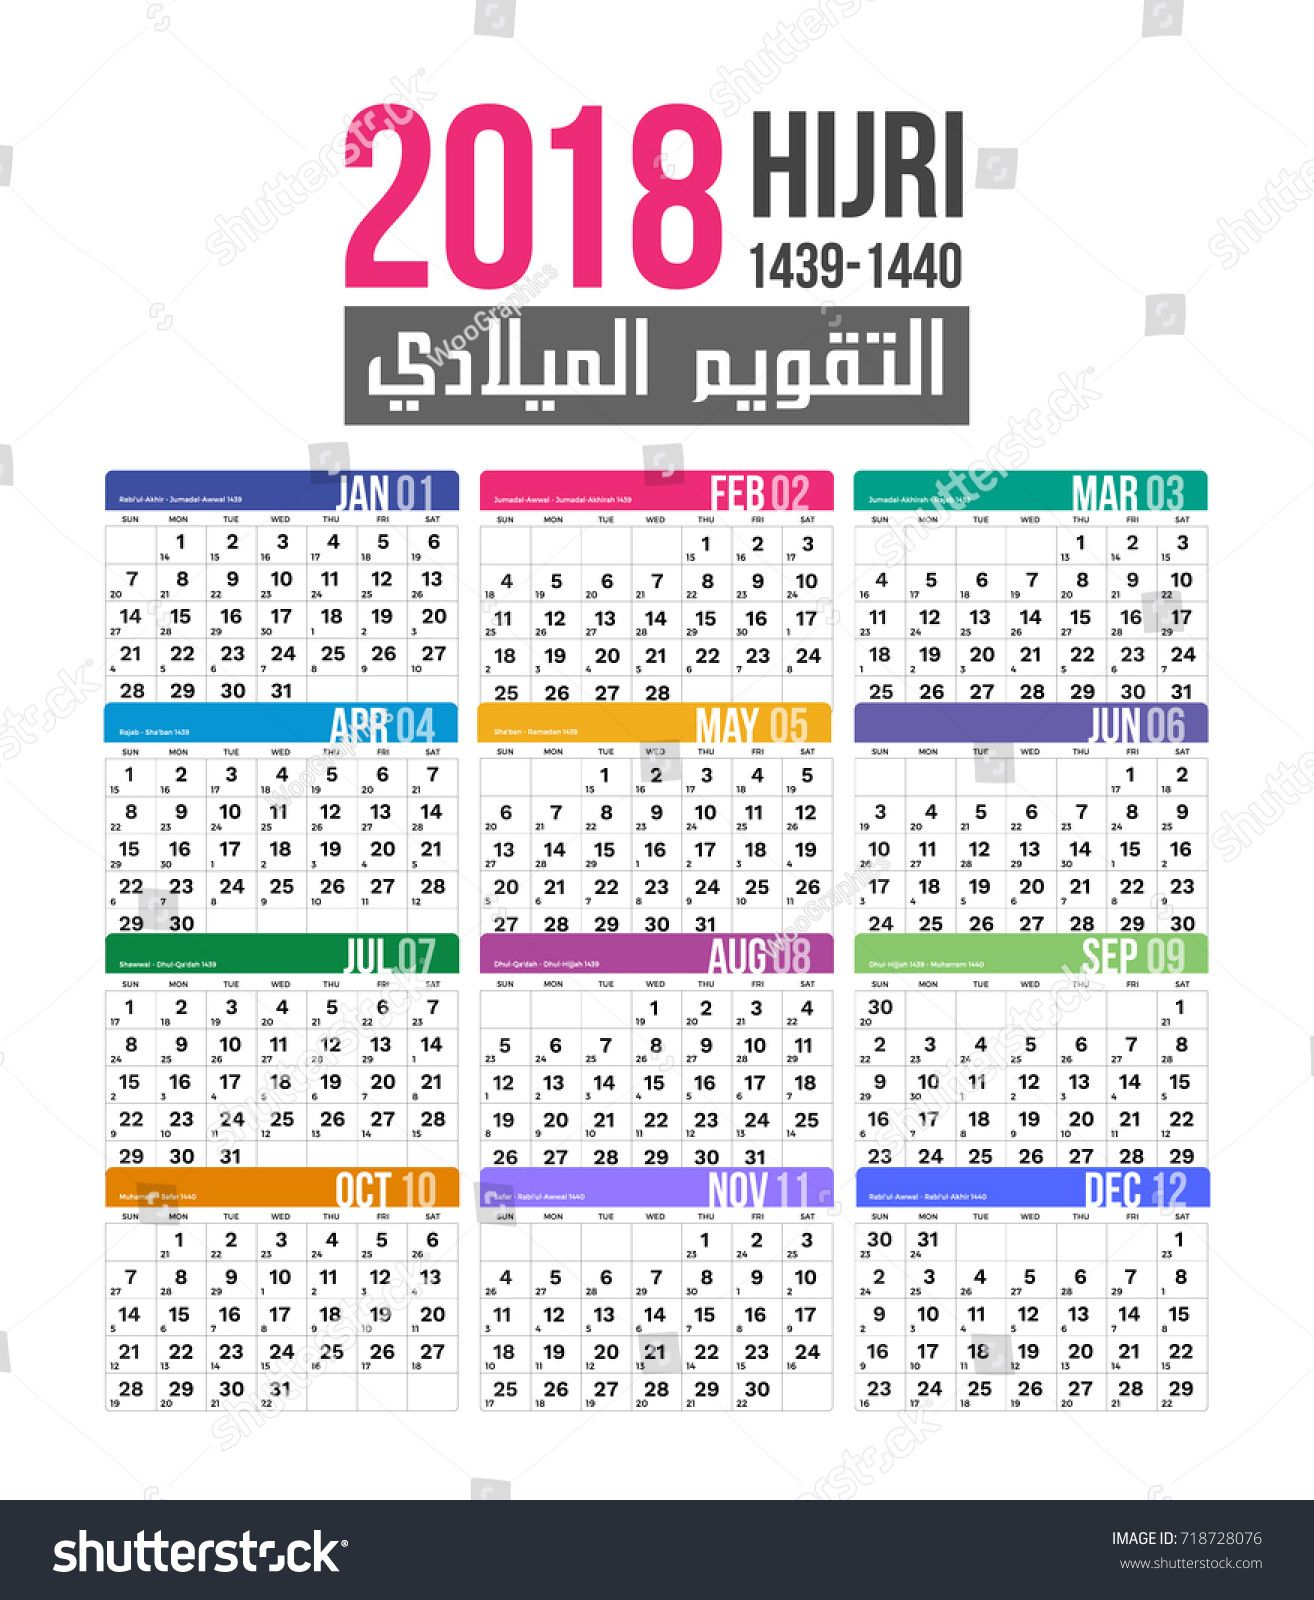 Calendario Ramadan 2020.2018 Islamic Hijri Calendar Template Design Version 4 Instruction